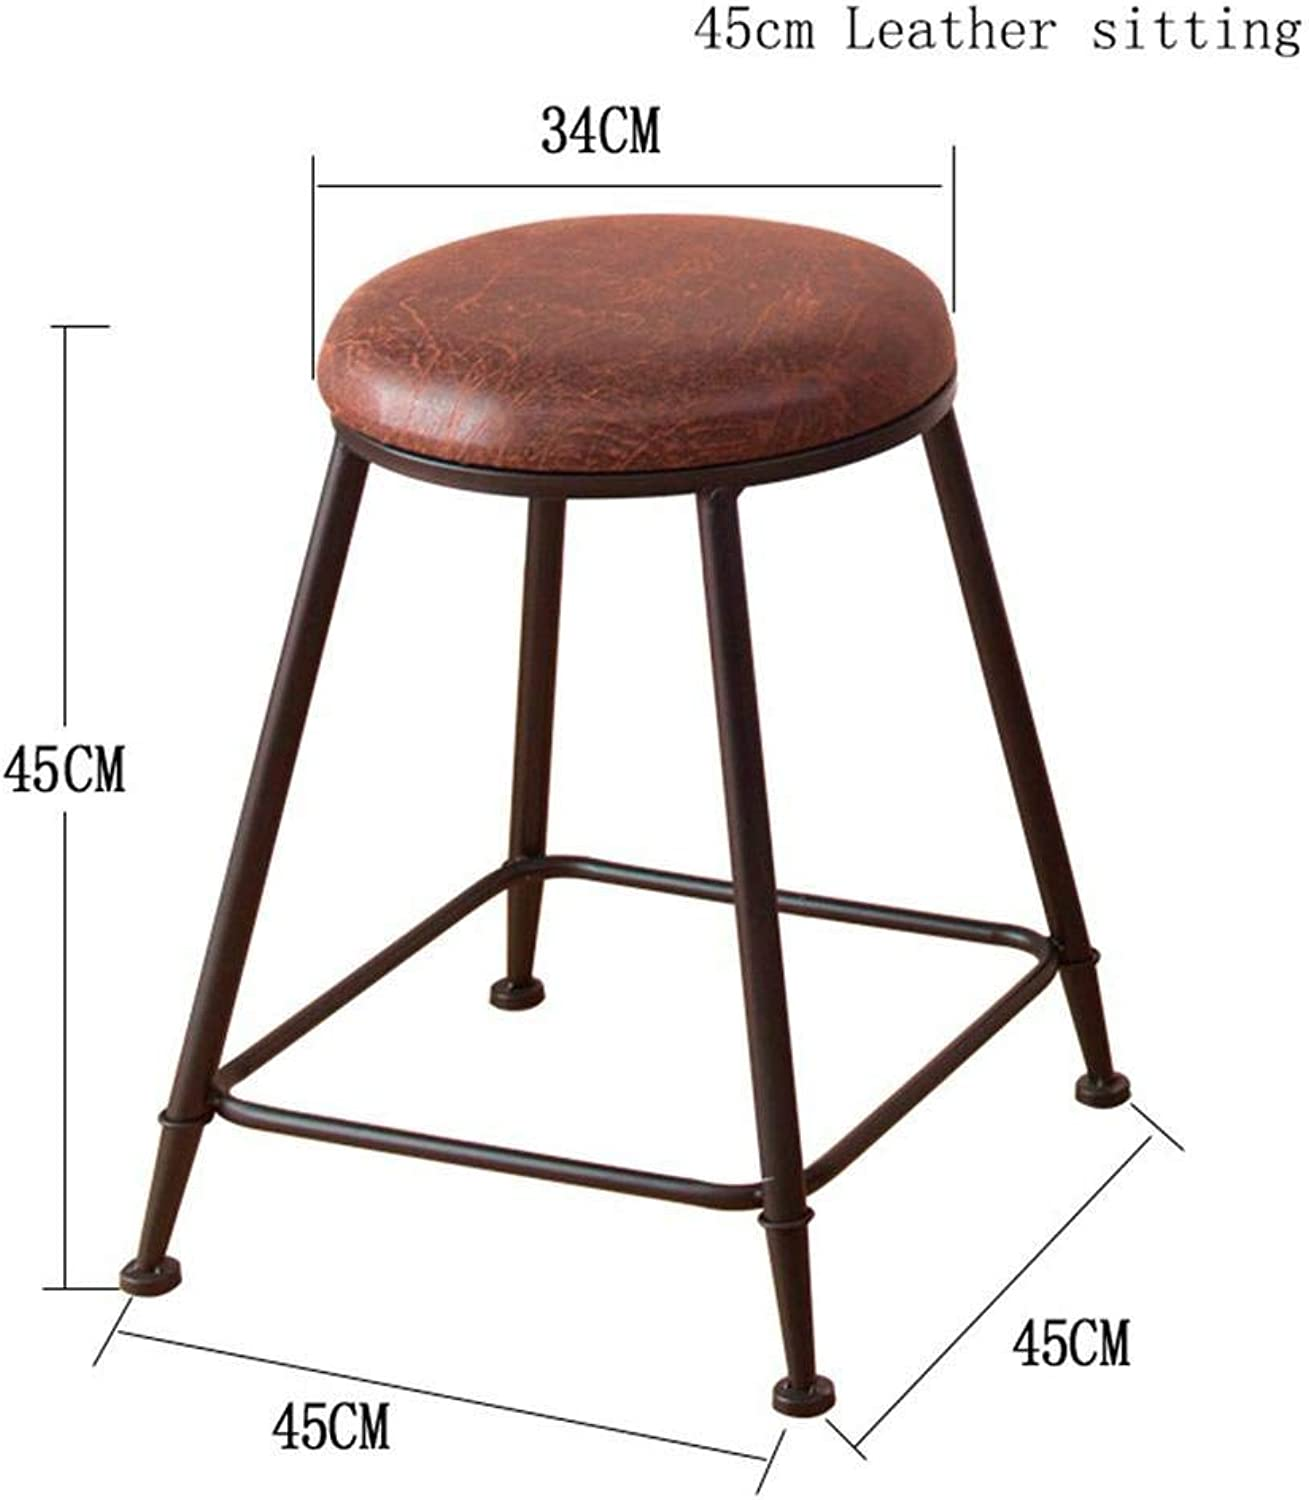 Bar Stool Coffee Chair Retro Kitchen Stools with Metal Legs High Stool Bar Stools Leather Seat Solid Wood Seats Breakfast Bar Chair Dining Chair PU Cushion,45Cm